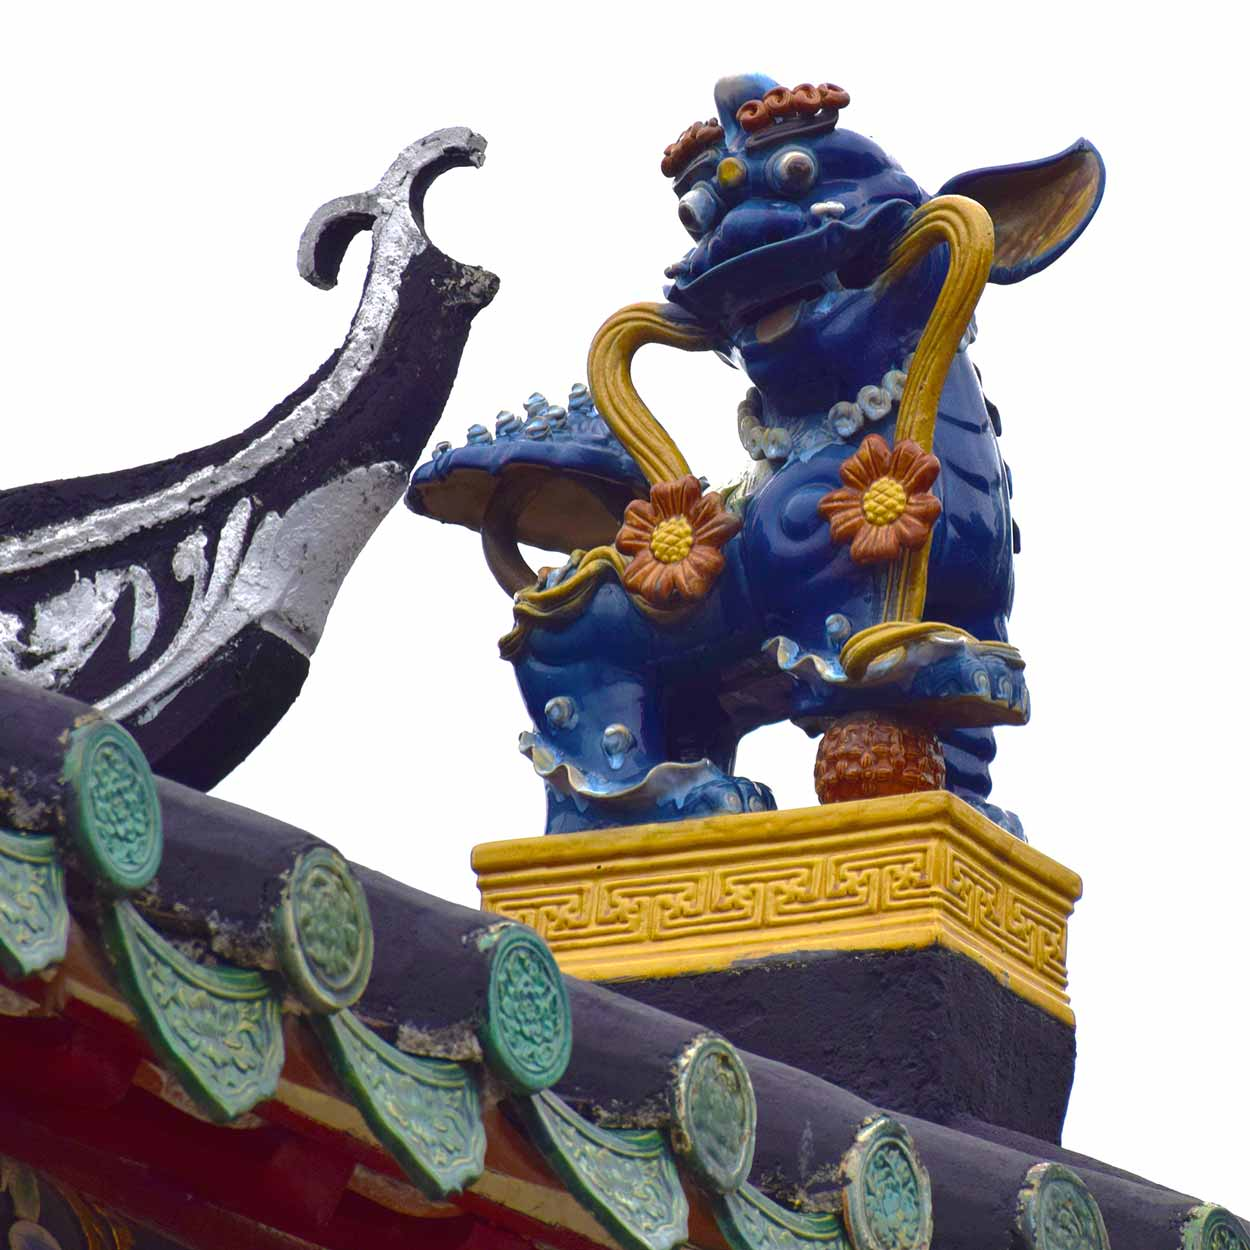 Sculpture on the roof of Tung Chung Ling Ancestral Hall, Lung Yeuk Tau Heritage Trail, Hong Kong, China